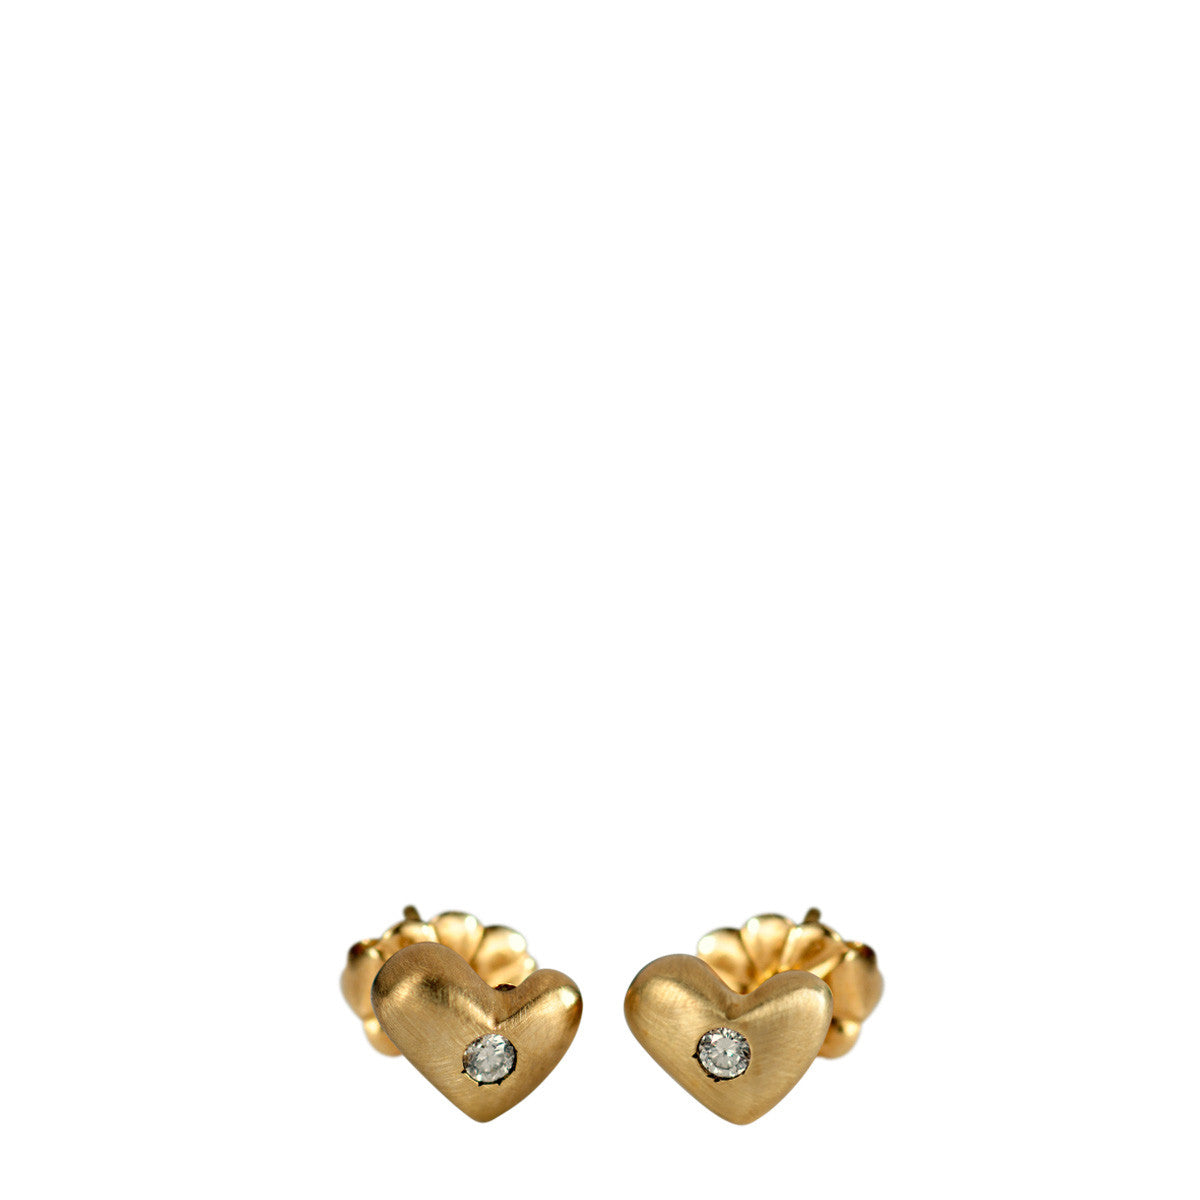 10K Gold Heart Stud Earrings with Diamonds